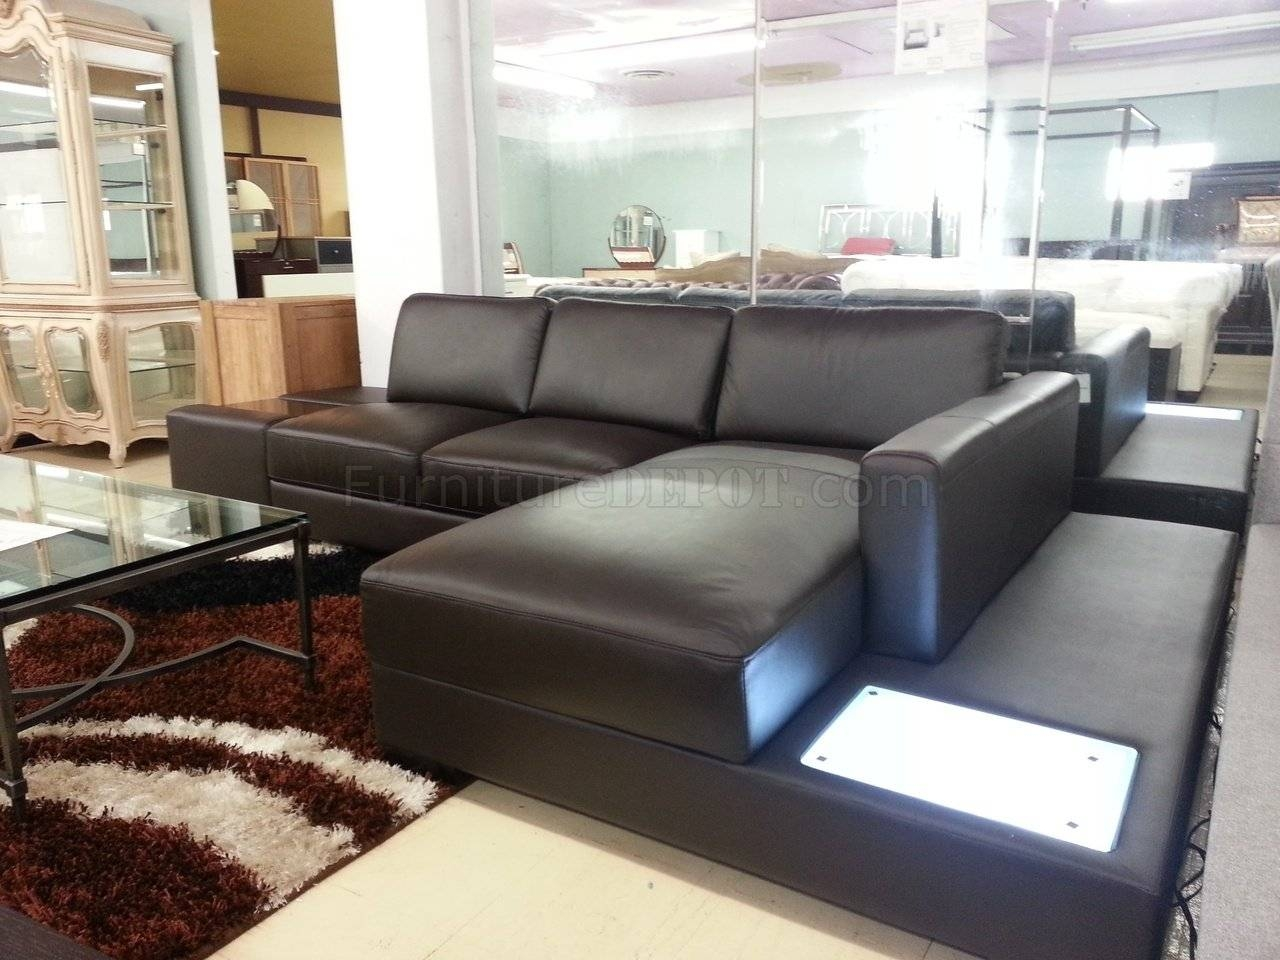 35 Mini Sectional Sofa In Off-White Leather within Mini Sectional Sofas (Image 1 of 30)